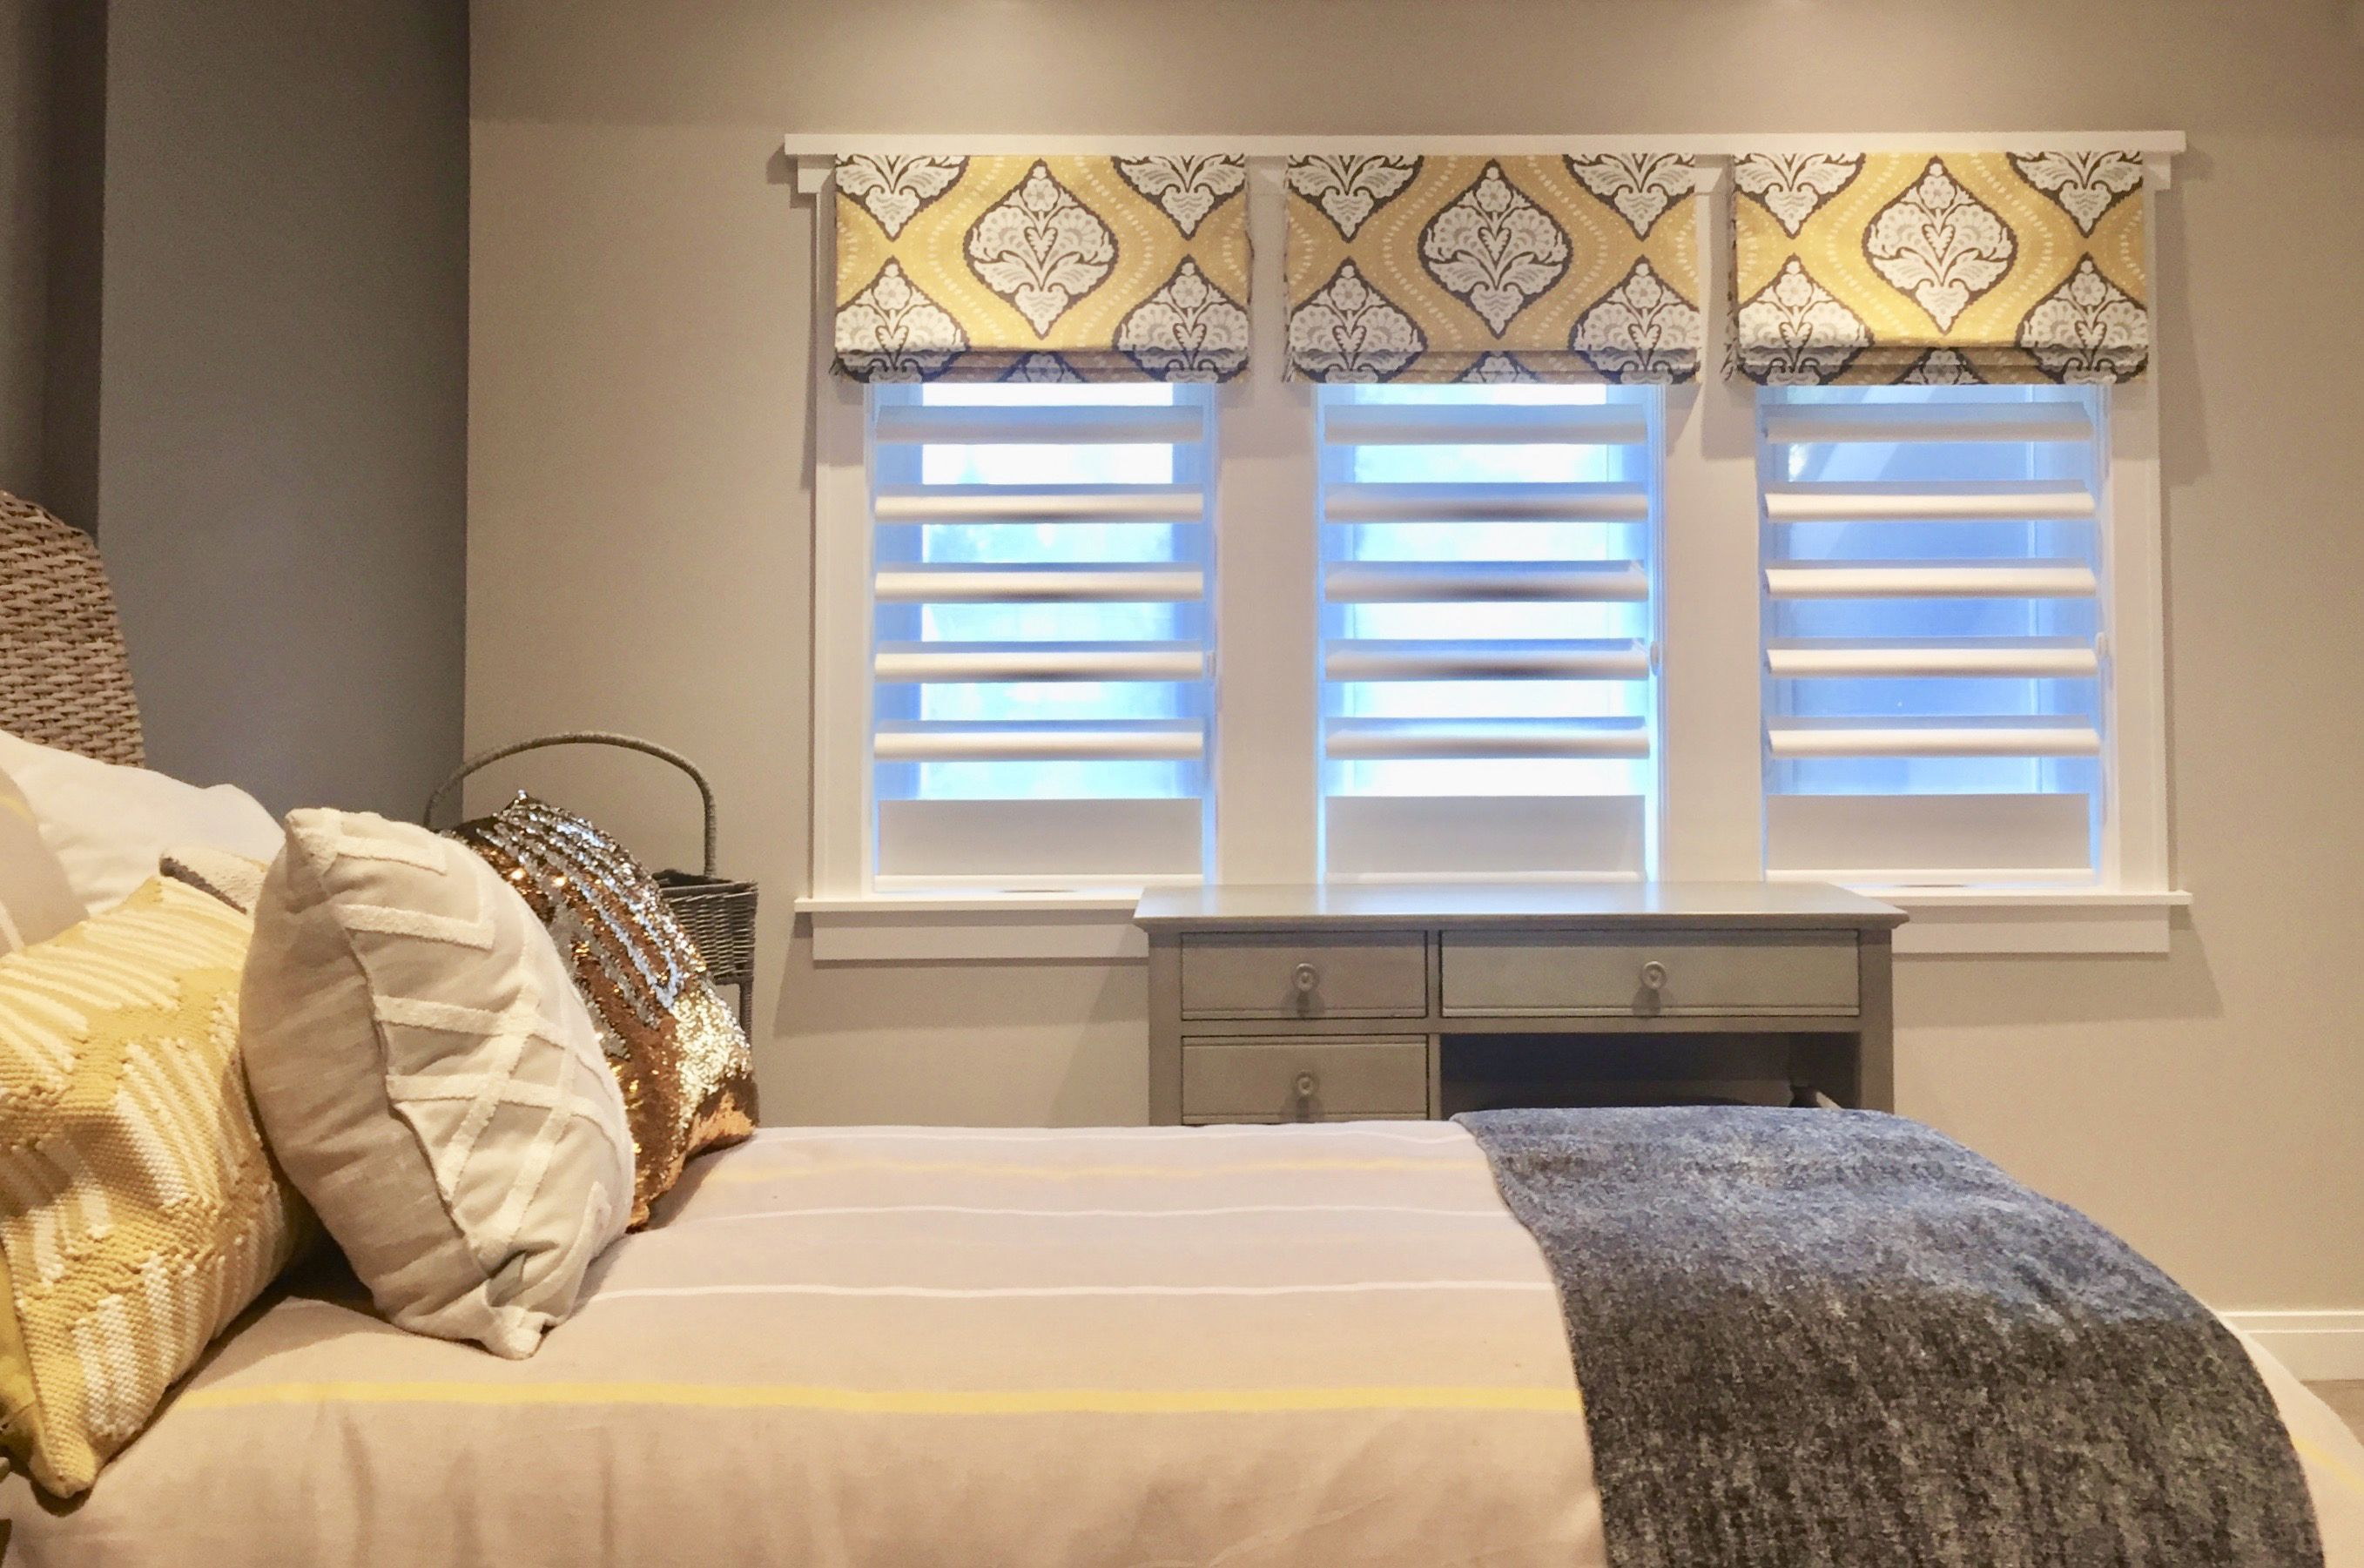 Creative window coverings  gillian  the flexibility with roman shades allows you to be